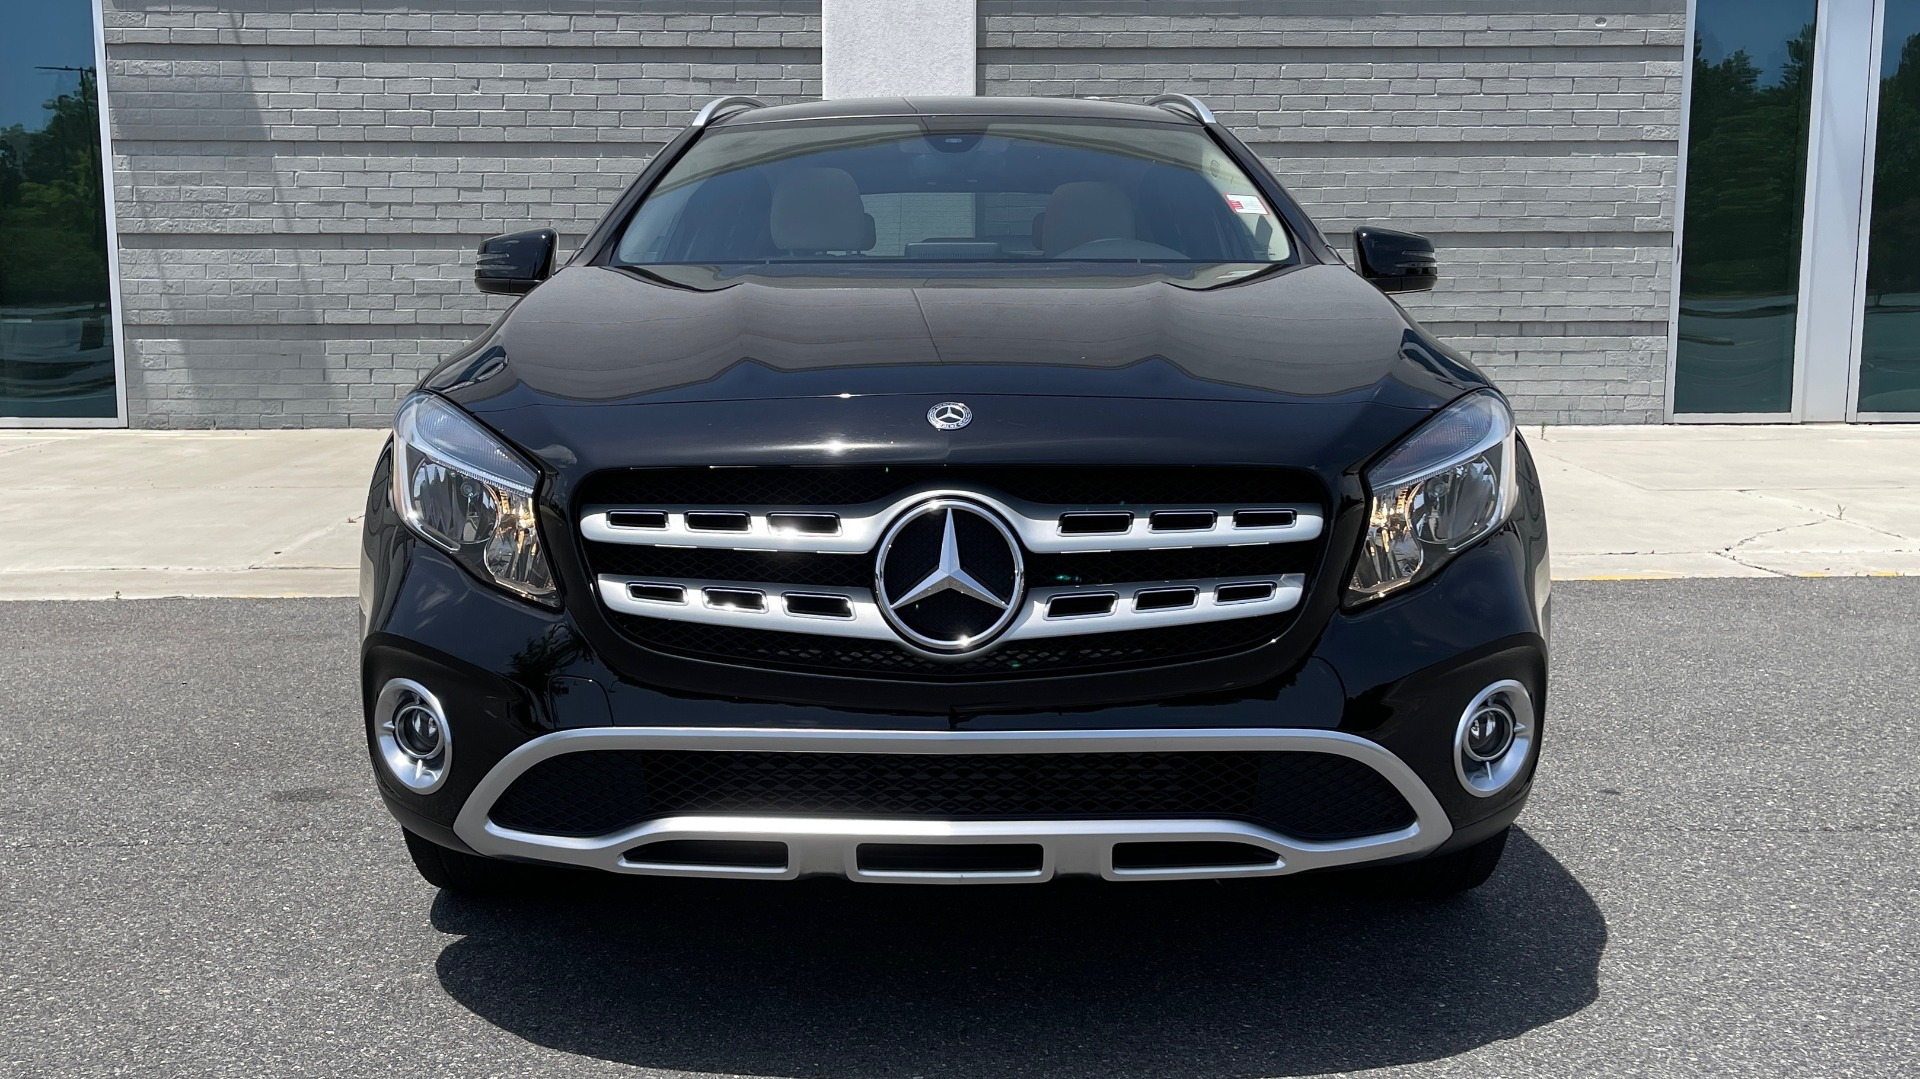 Used 2018 Mercedes-Benz GLA 250 4MATIC SUV / PANO-ROOF / HTD STS / BLIND SPOT ASST / APPLE for sale $31,995 at Formula Imports in Charlotte NC 28227 10